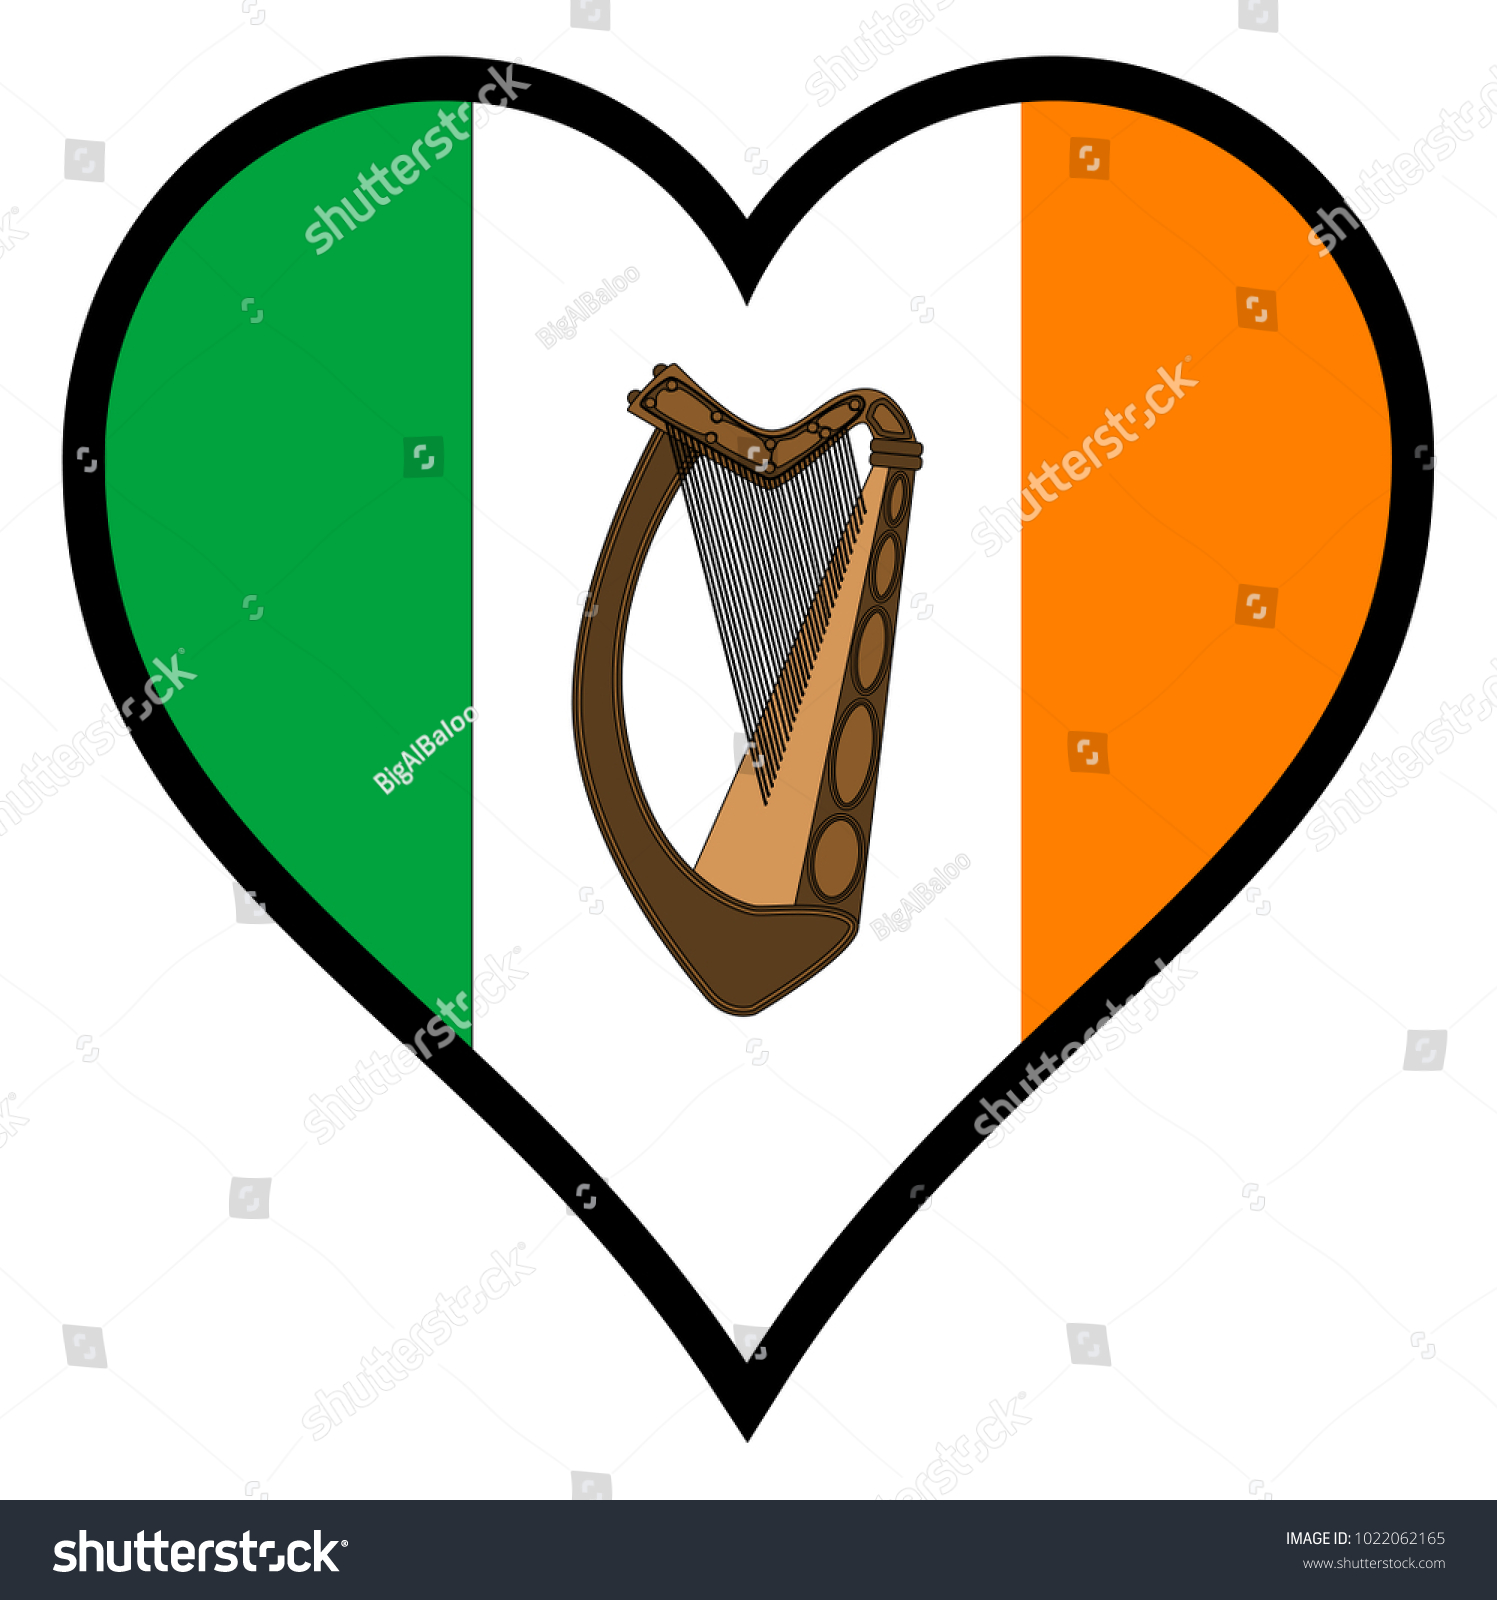 Irish flag within heart all over stock illustration 1022062165 irish flag within a heart all over a white background biocorpaavc Images